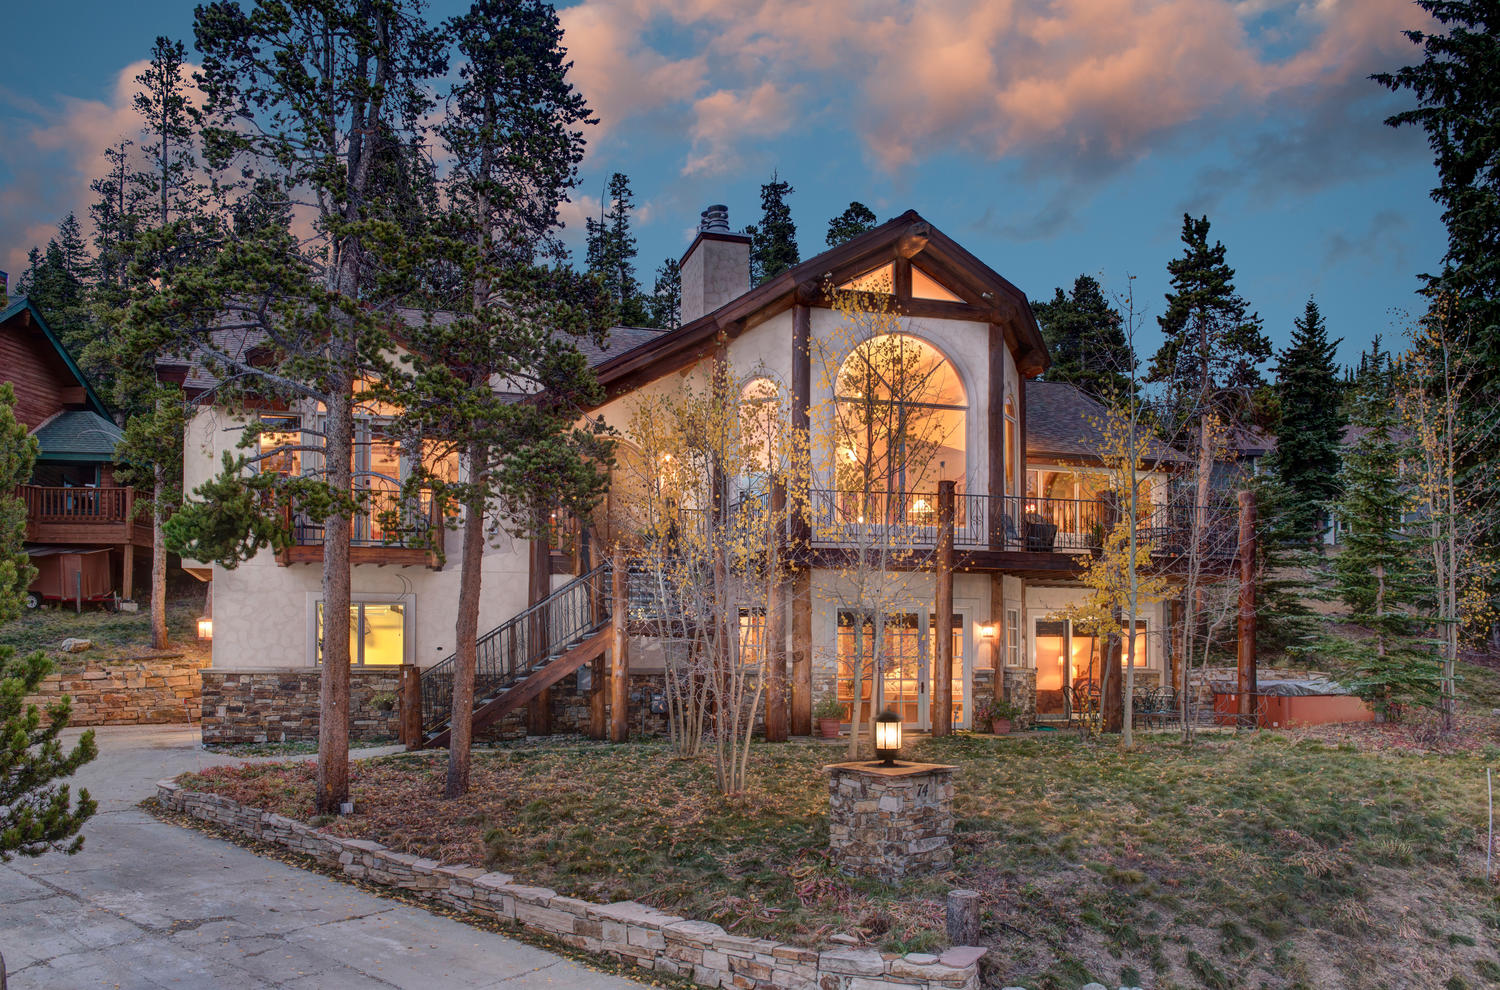 Single Family Home for Active at Woodmoor at Breckenridge 74 Uncle Sam Lode Road Breckenridge, Colorado 80424 United States